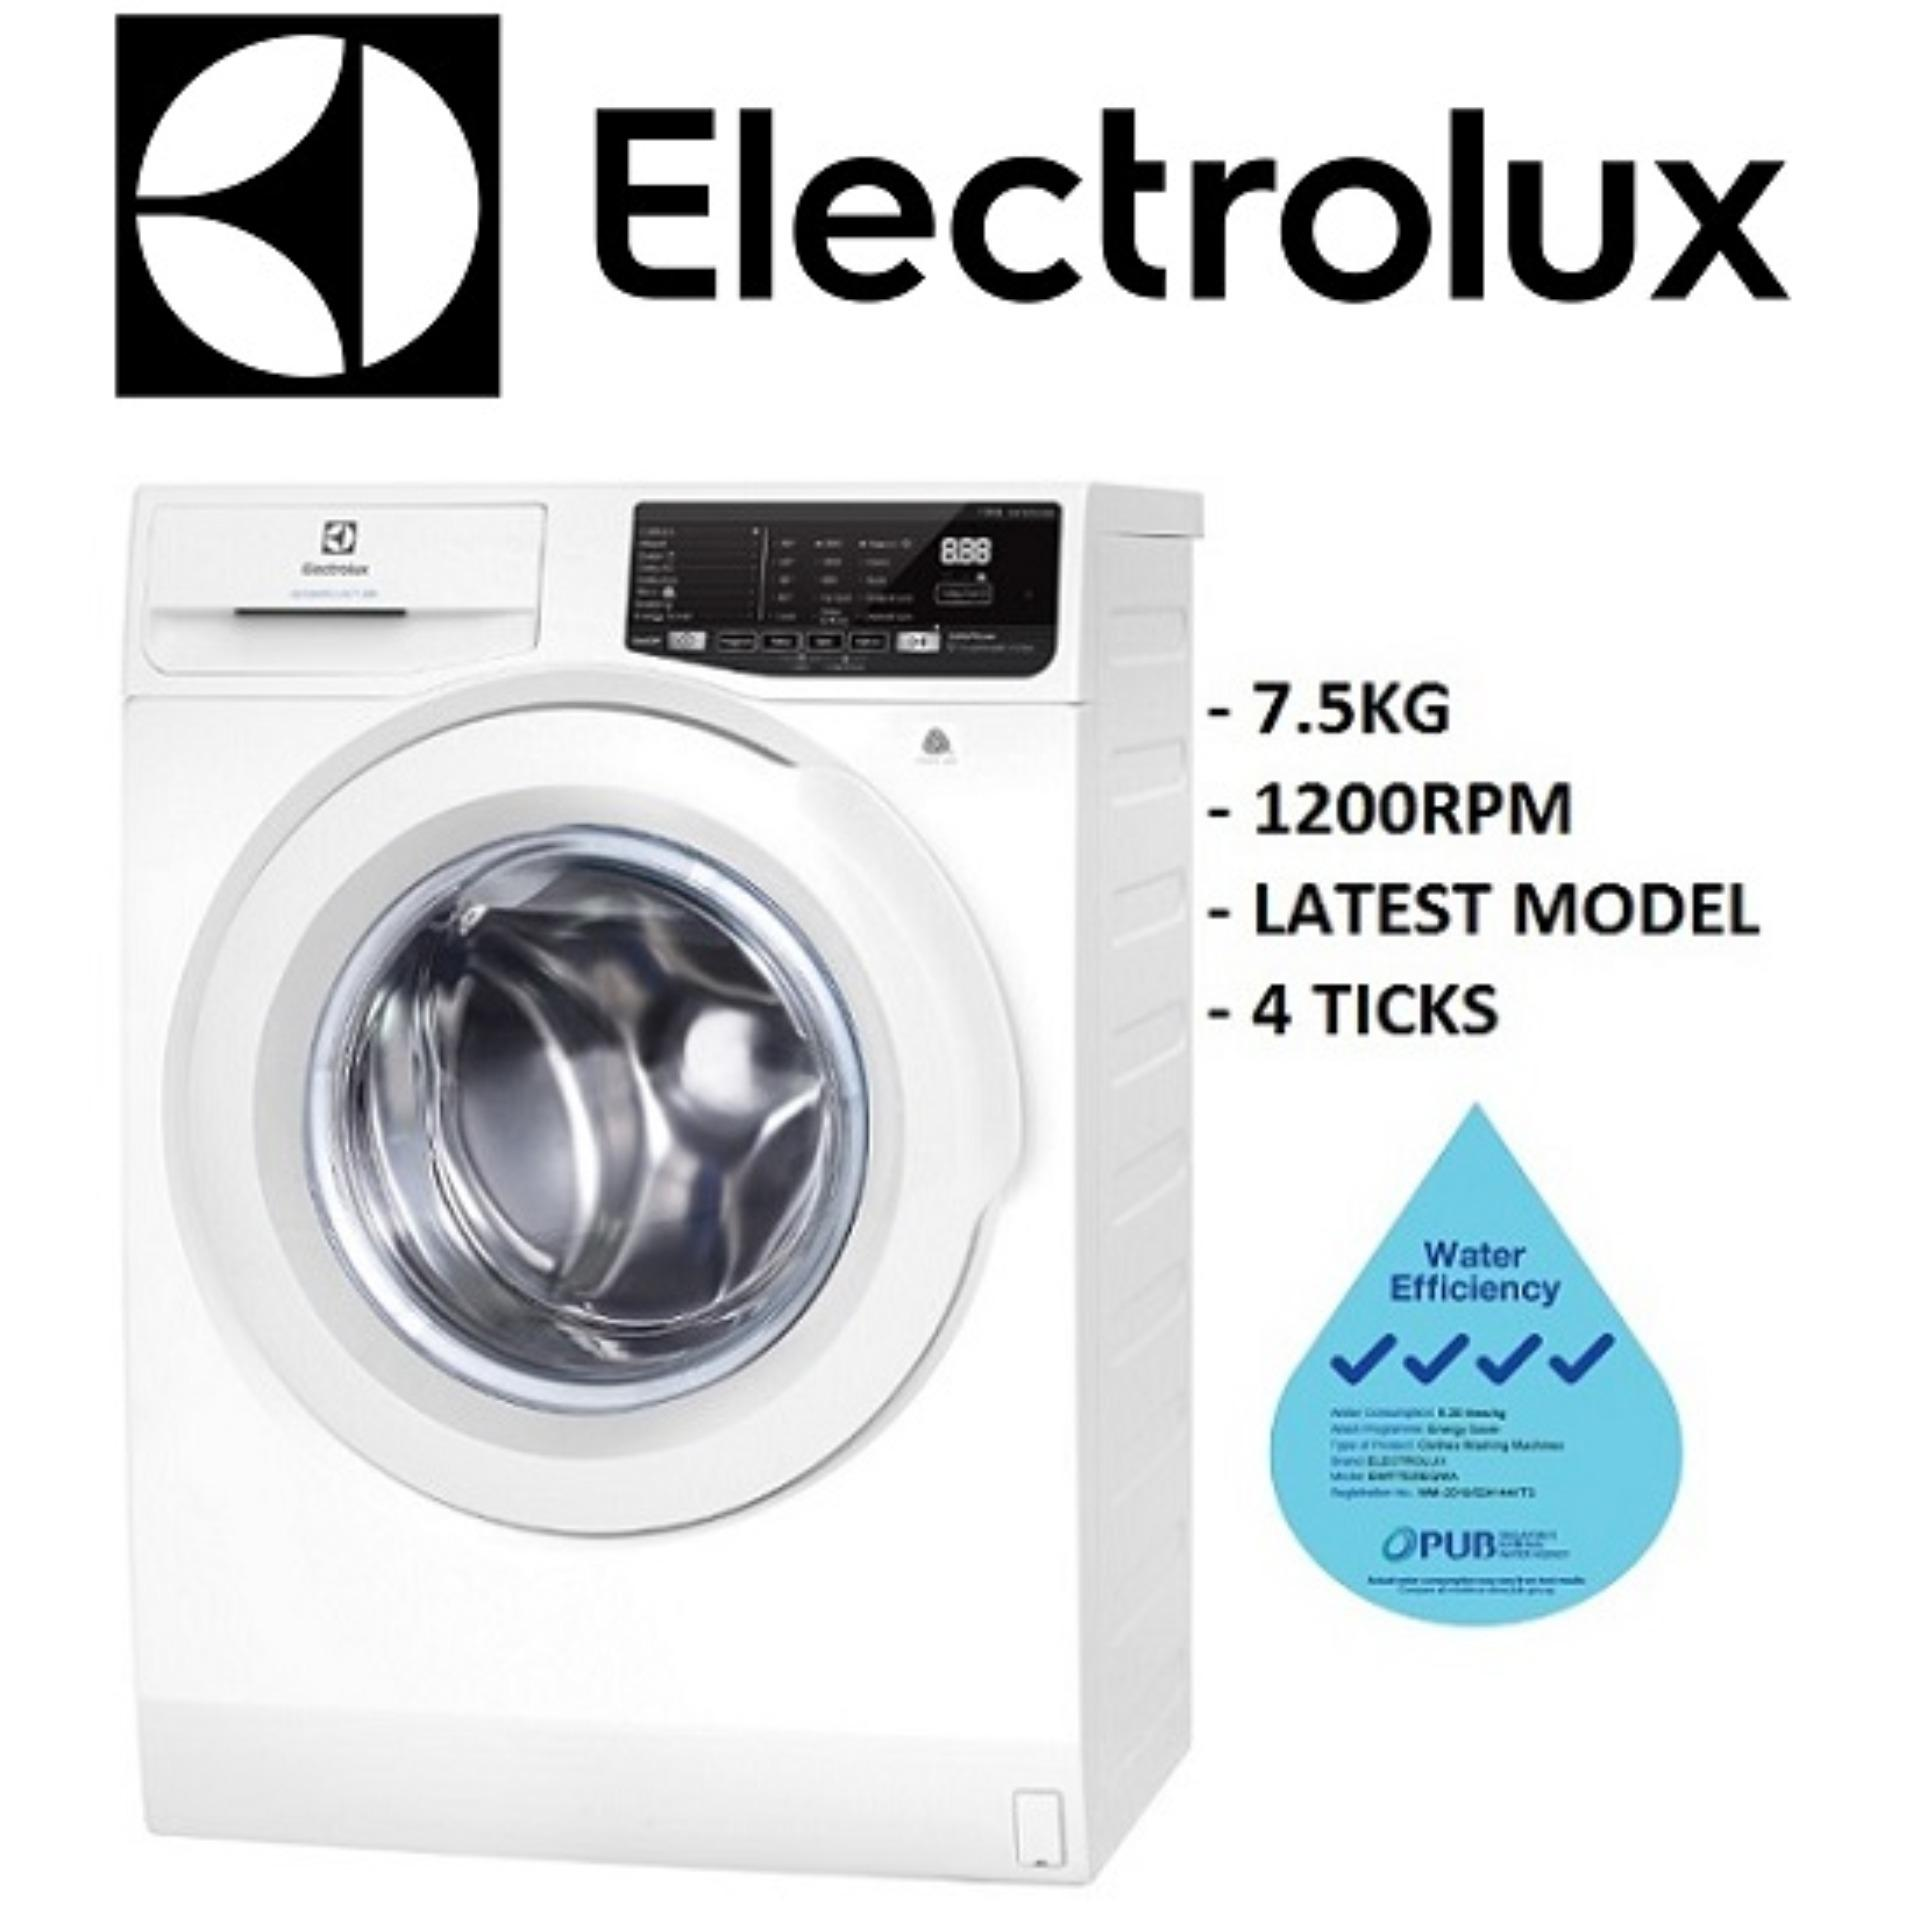 ELECTROLUX EWF7525EQWA 7.5KG FRONT LOAD WASHING MACHINE (1200RPM)